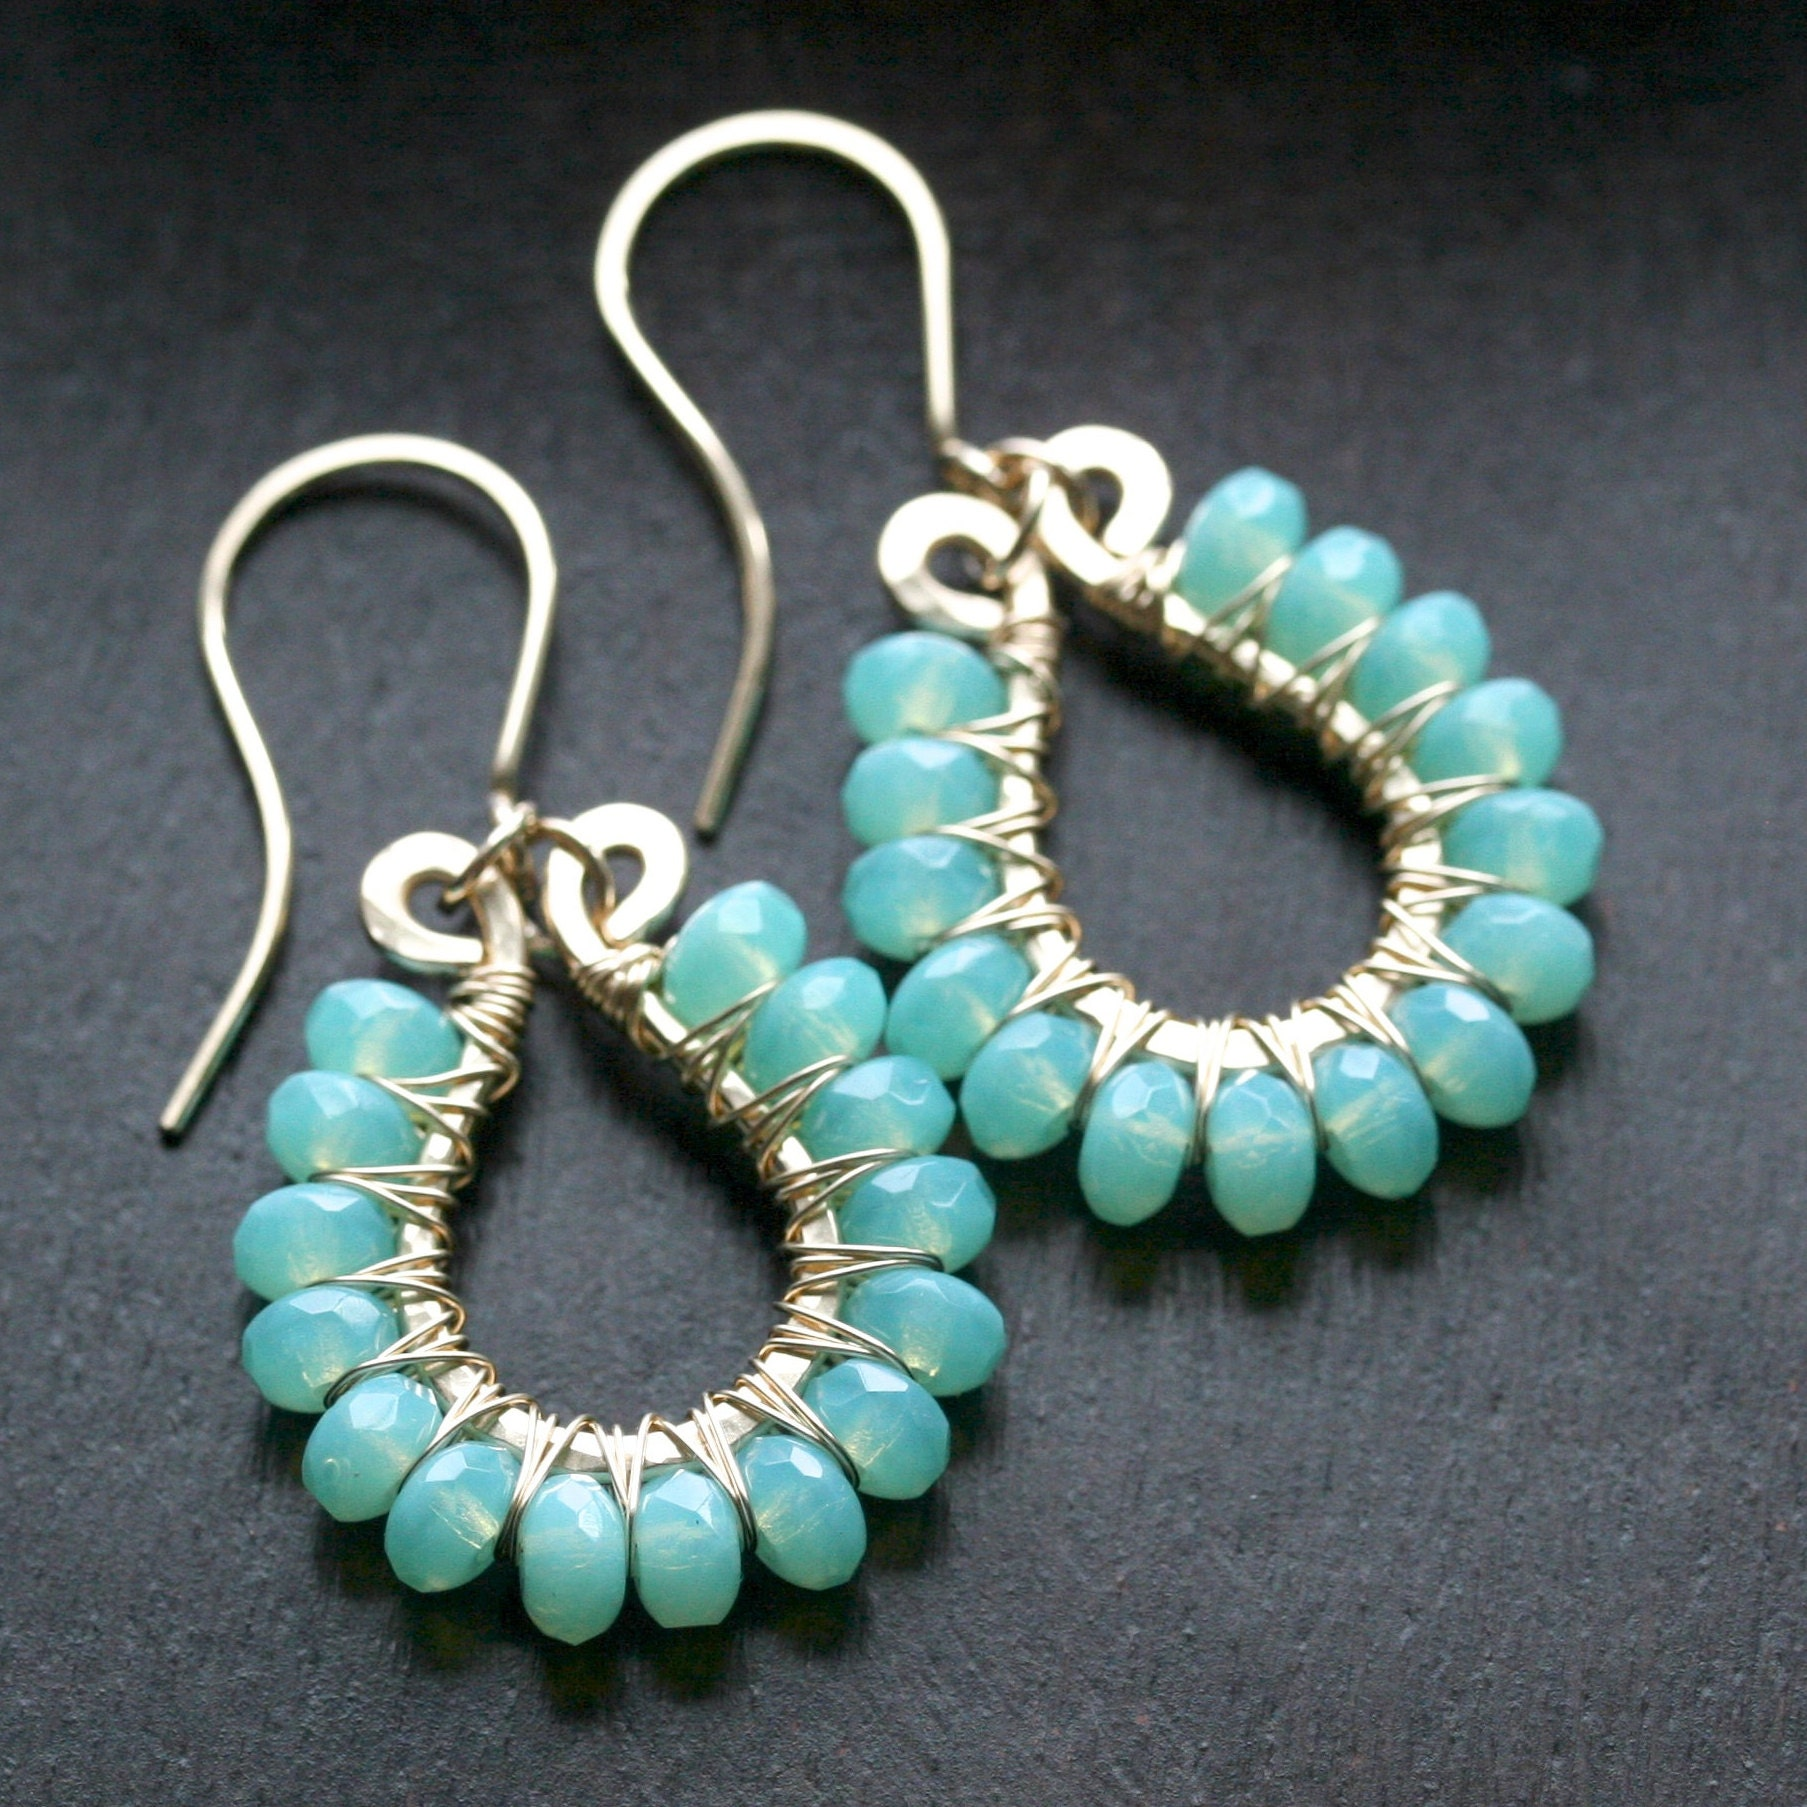 handmade jewelry earrings necklaces von MimiMicheleJewelry auf Etsy